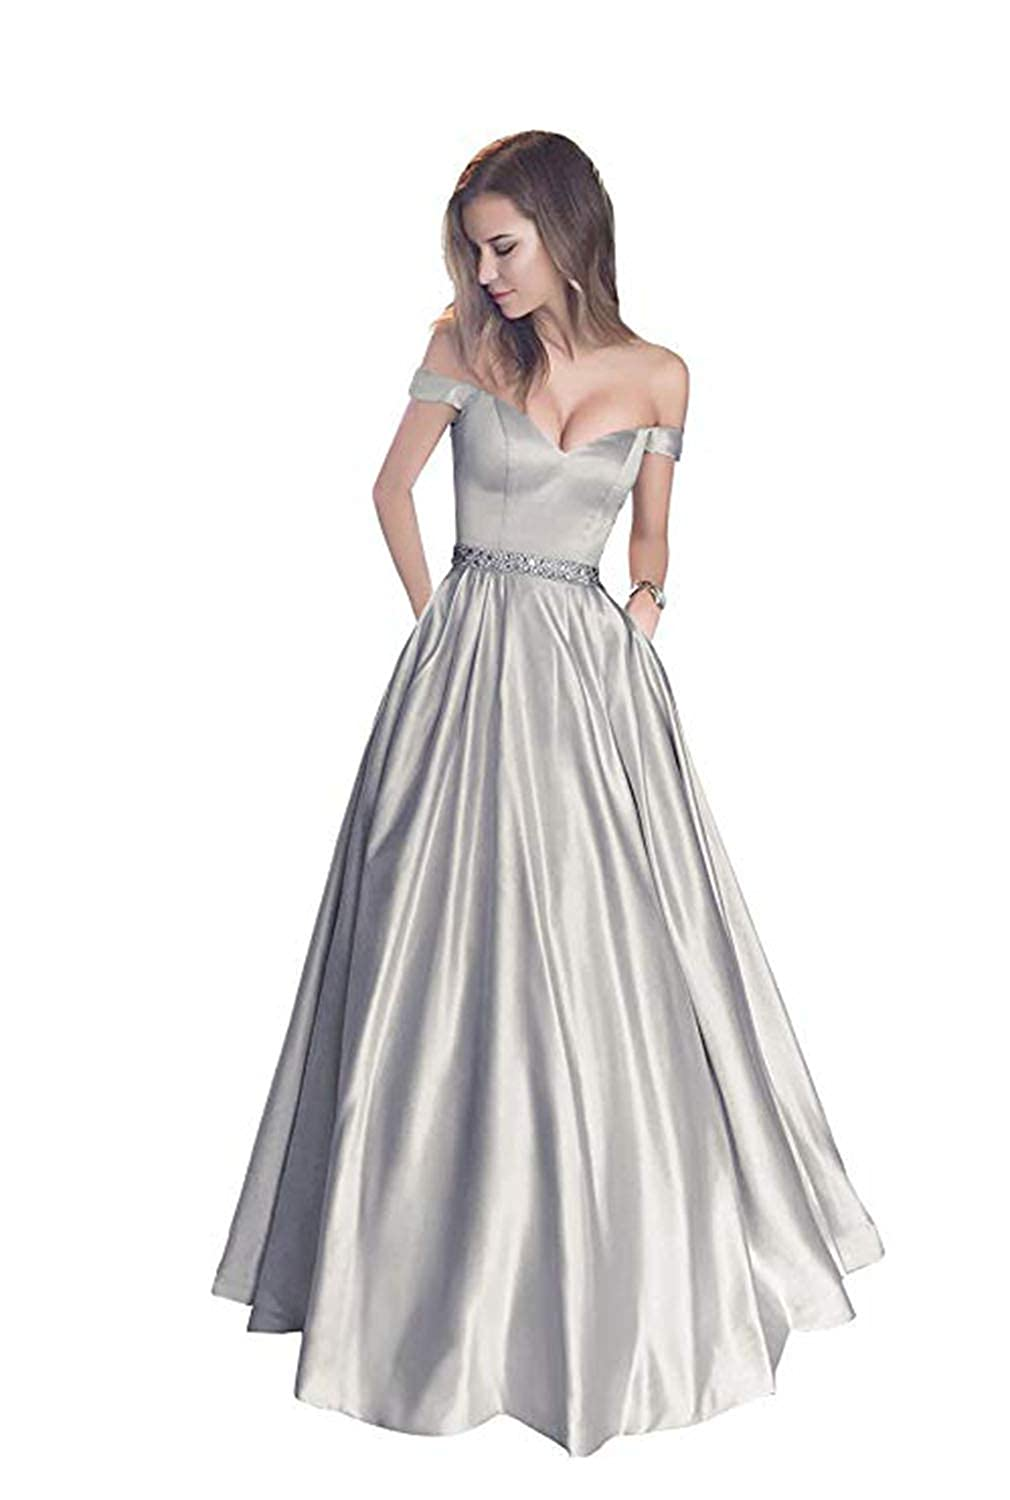 Silver without Belt FJMM Womens Off The Shoulder Beaded ALine Prom Dress for Party